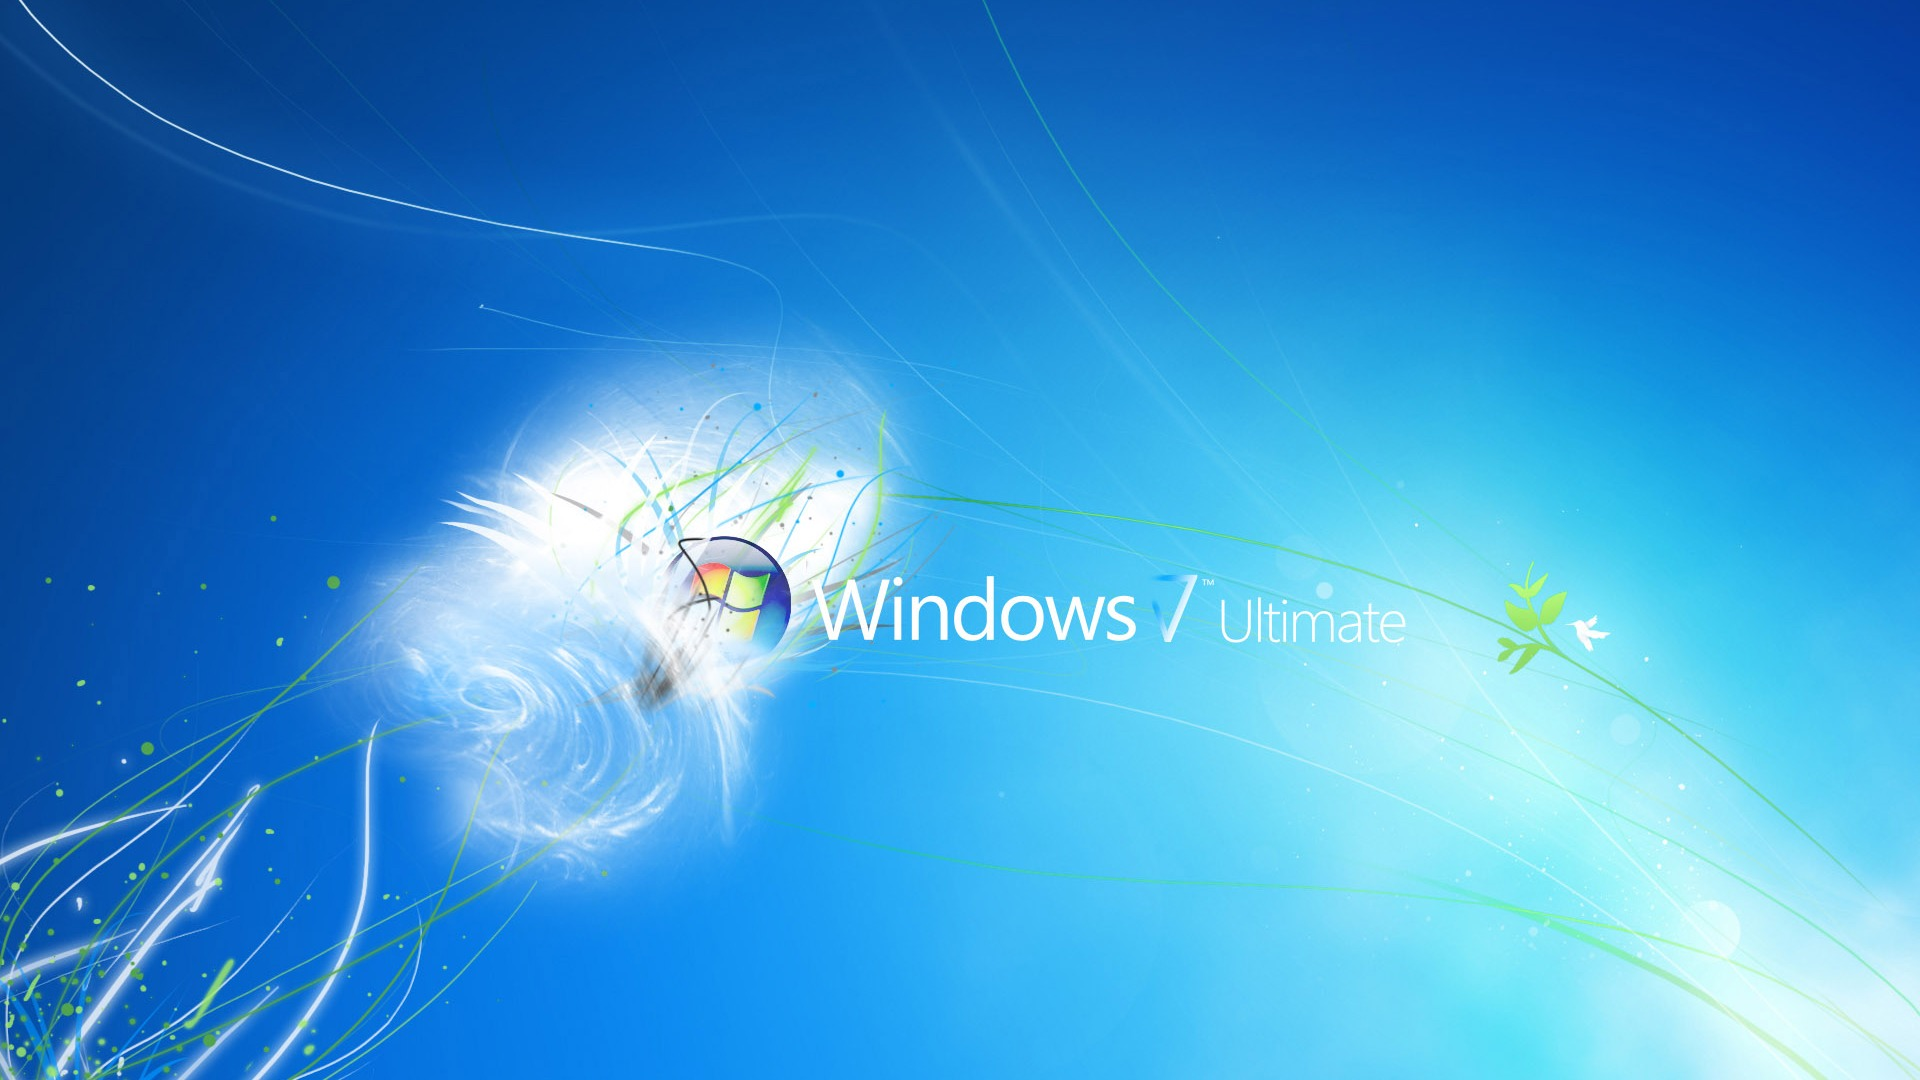 Windows7 fond d 39 cran th me 2 11 1920x1080 fond d for Theme d ecran